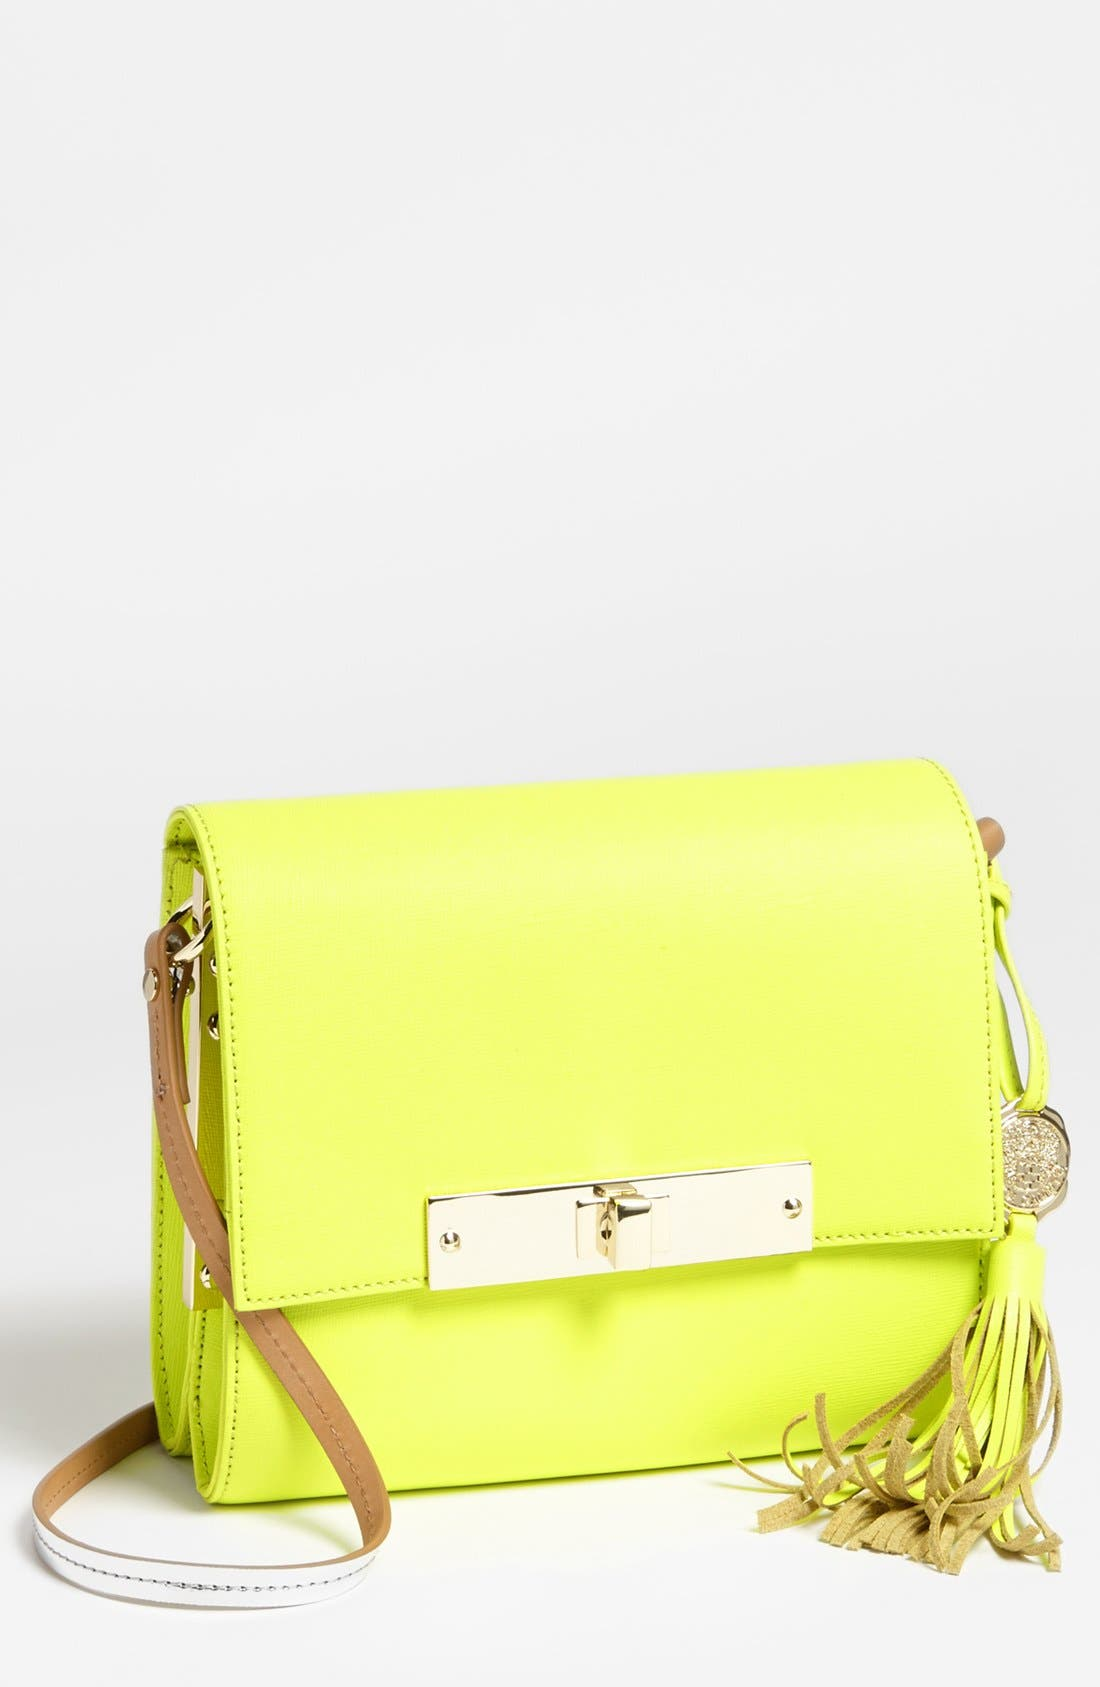 Main Image - Vince Camuto 'Judy' Crossbody Bag